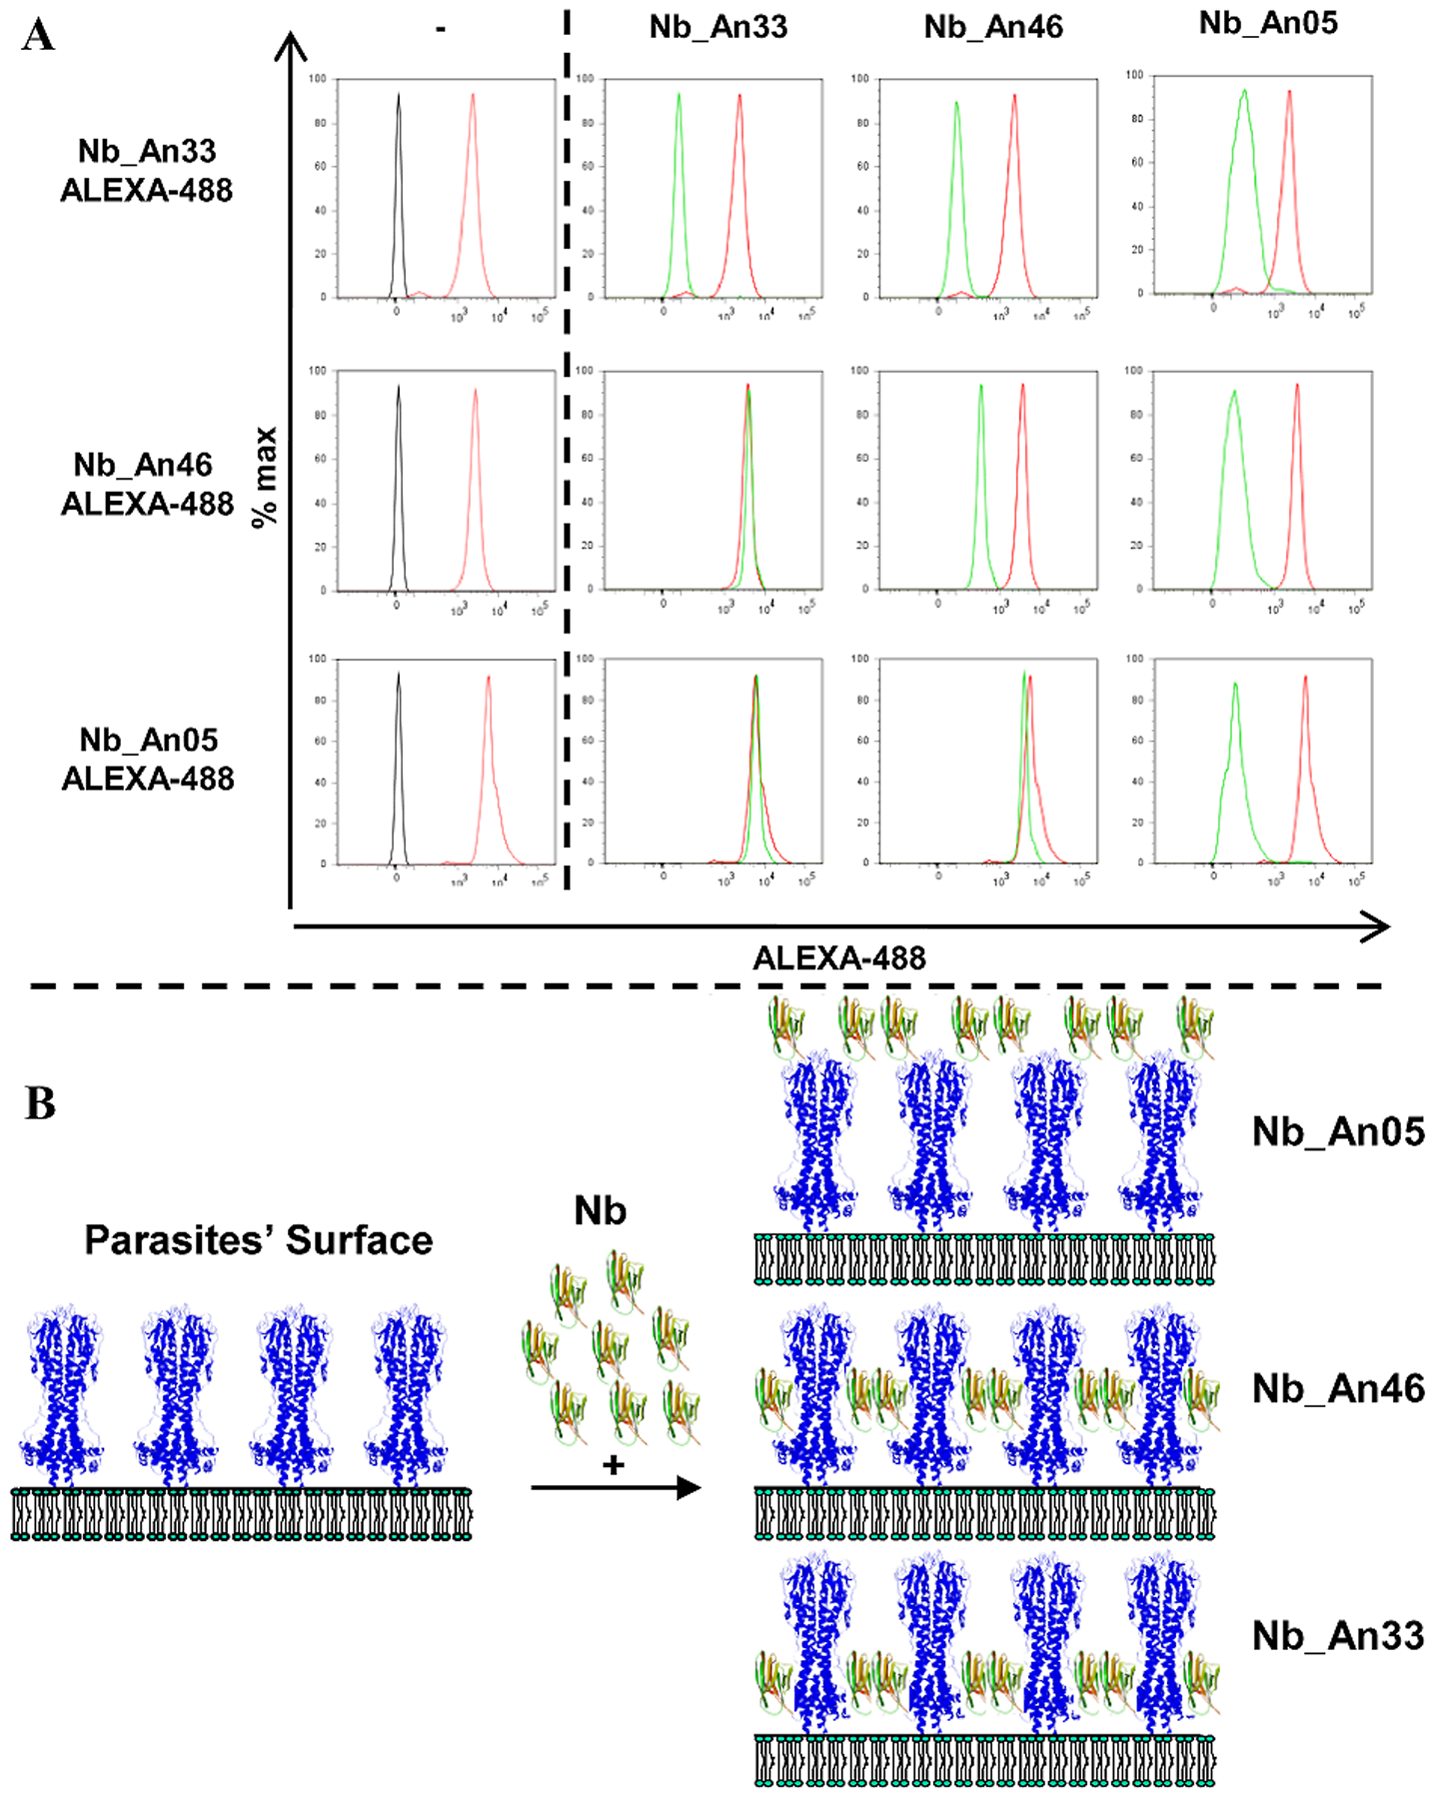 Competition binding experiments and schematic representation of the localization of Nb binding on VSG.